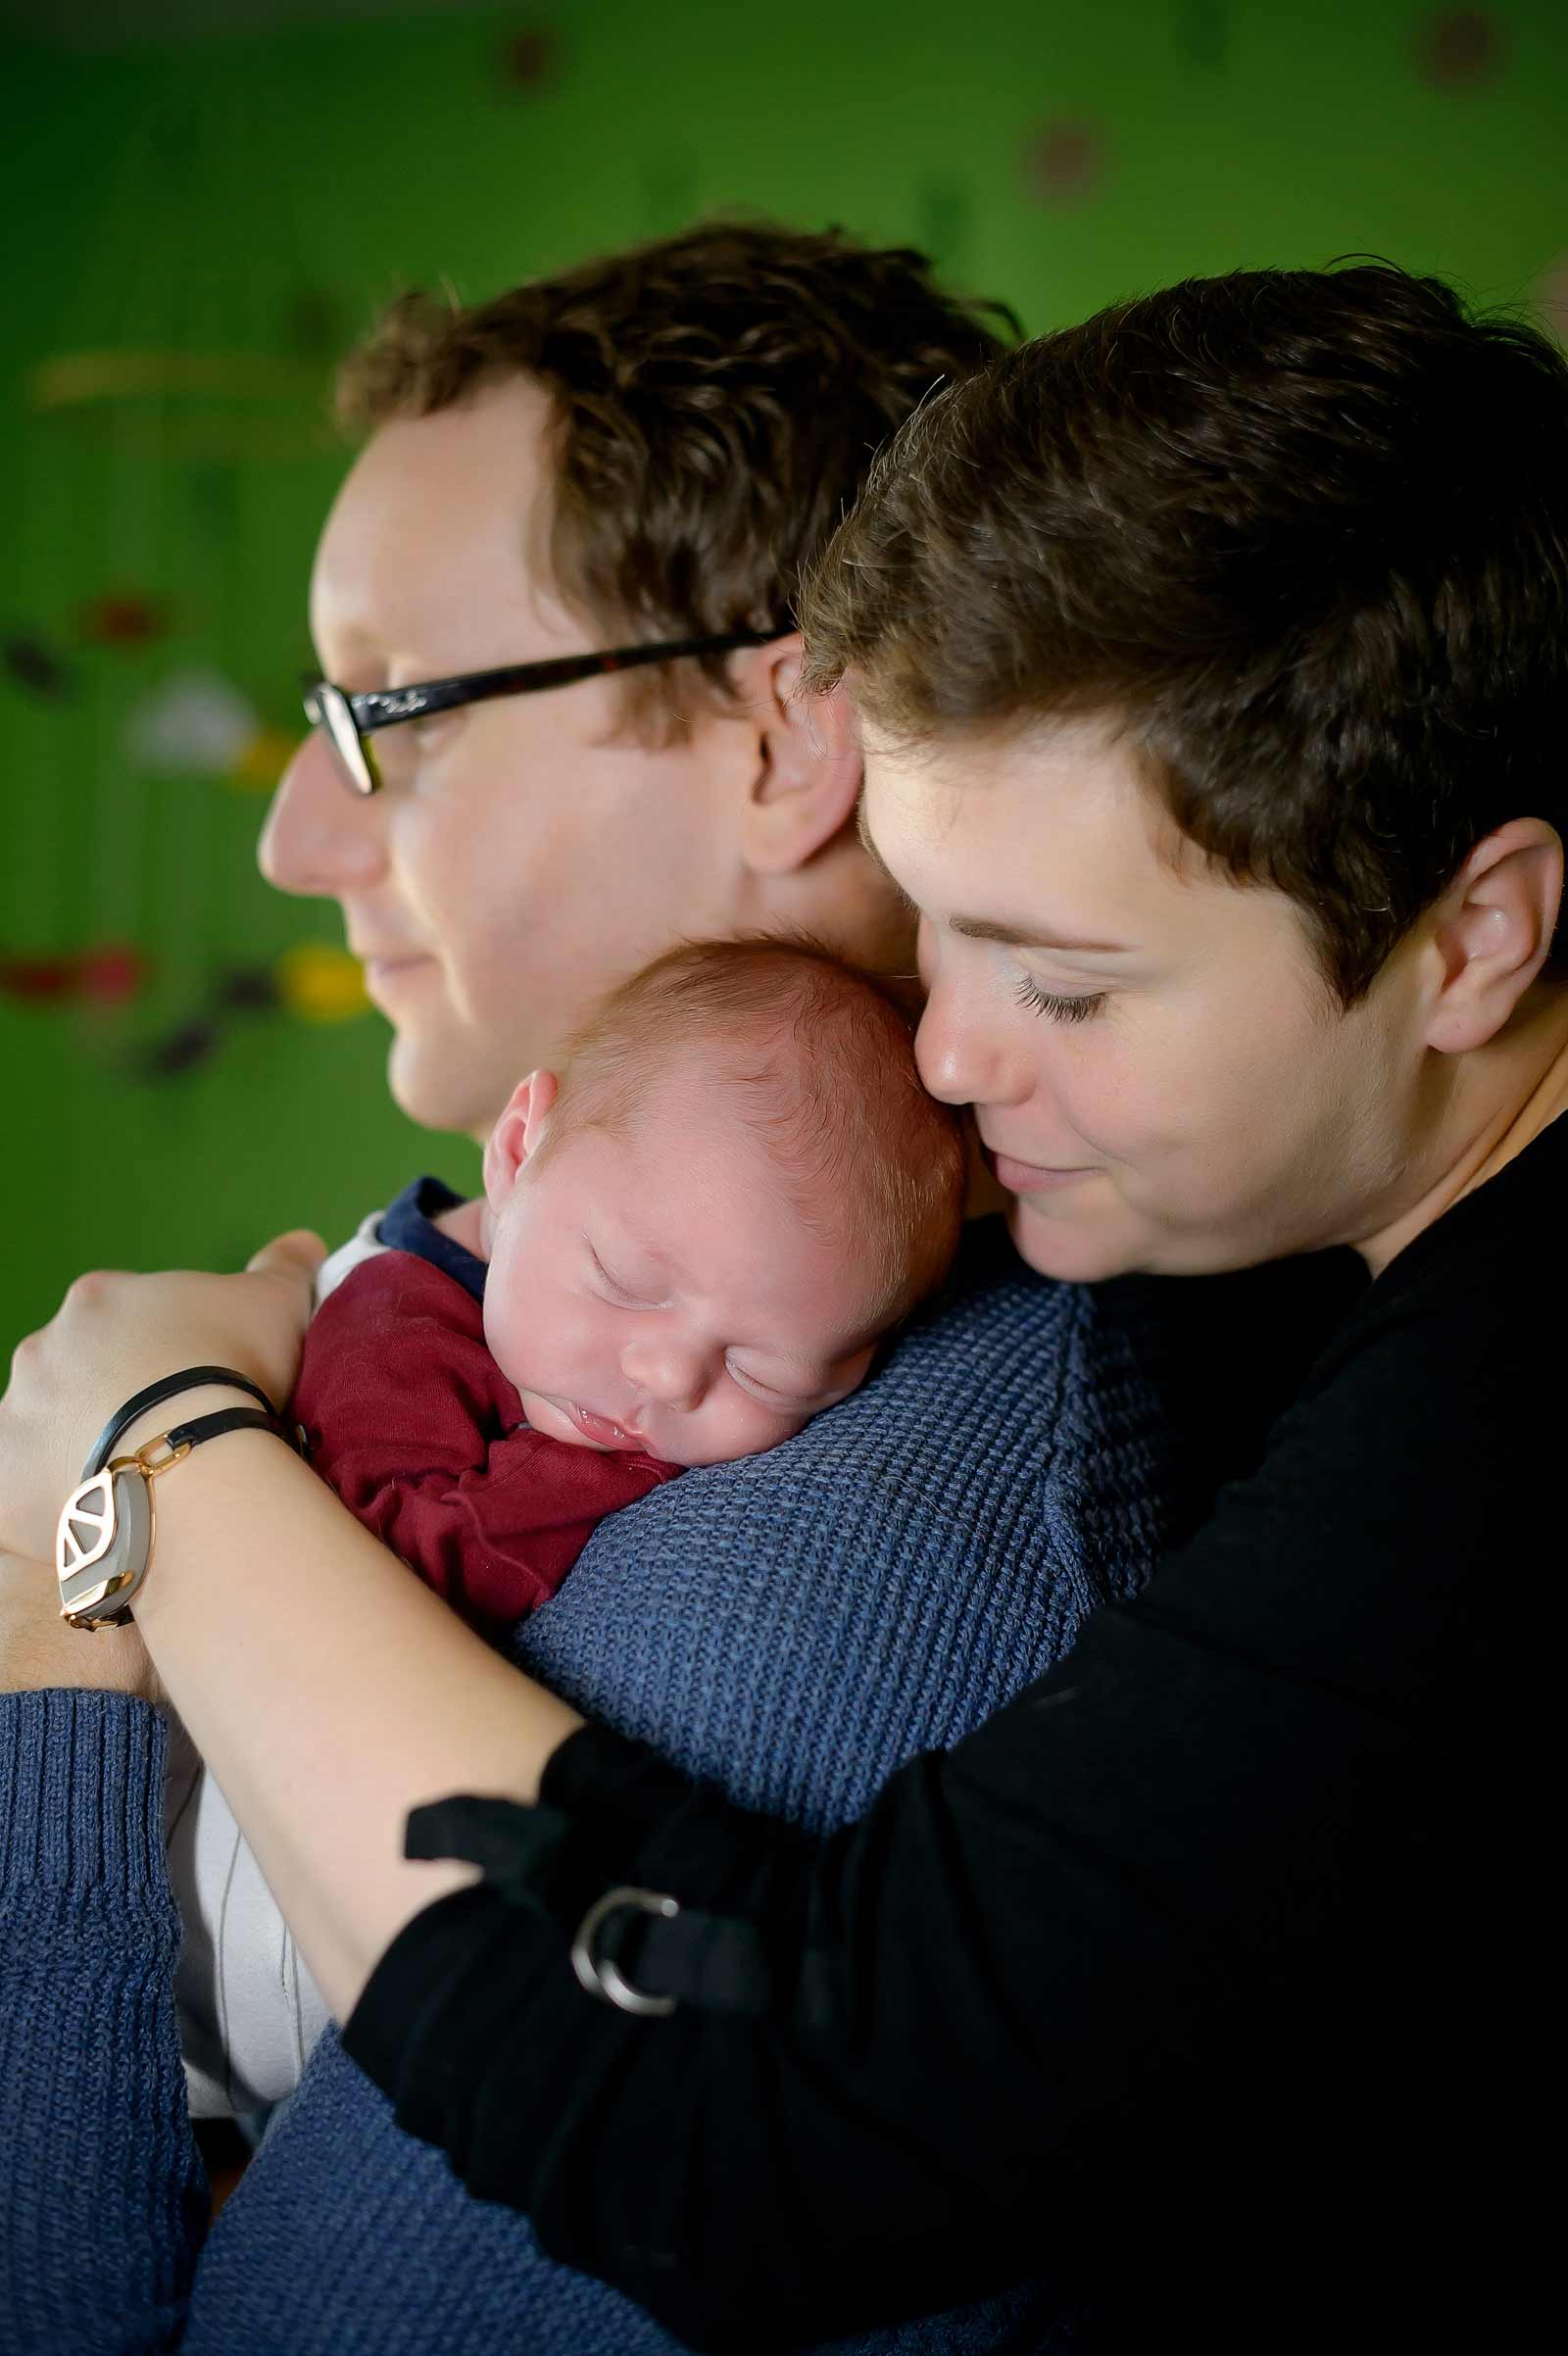 Chester sleeping on his Dad while is Mom cuddled him in Ottawa at his baby session.